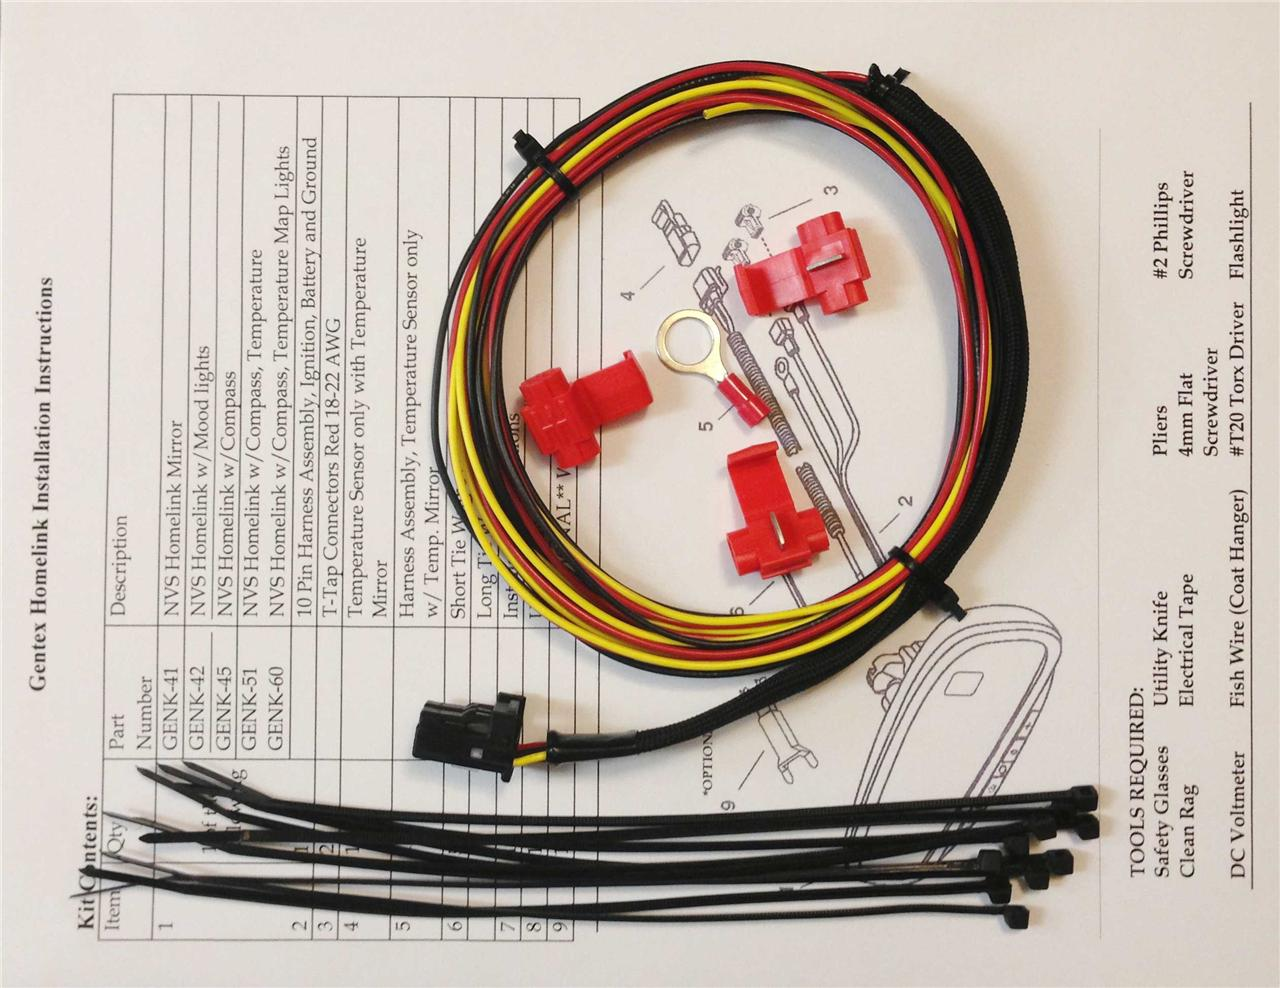 Gntxt Gentex 511 Wiring Diagram Gntx 313 453 Homelink Auto Dimming Rear View Mirror